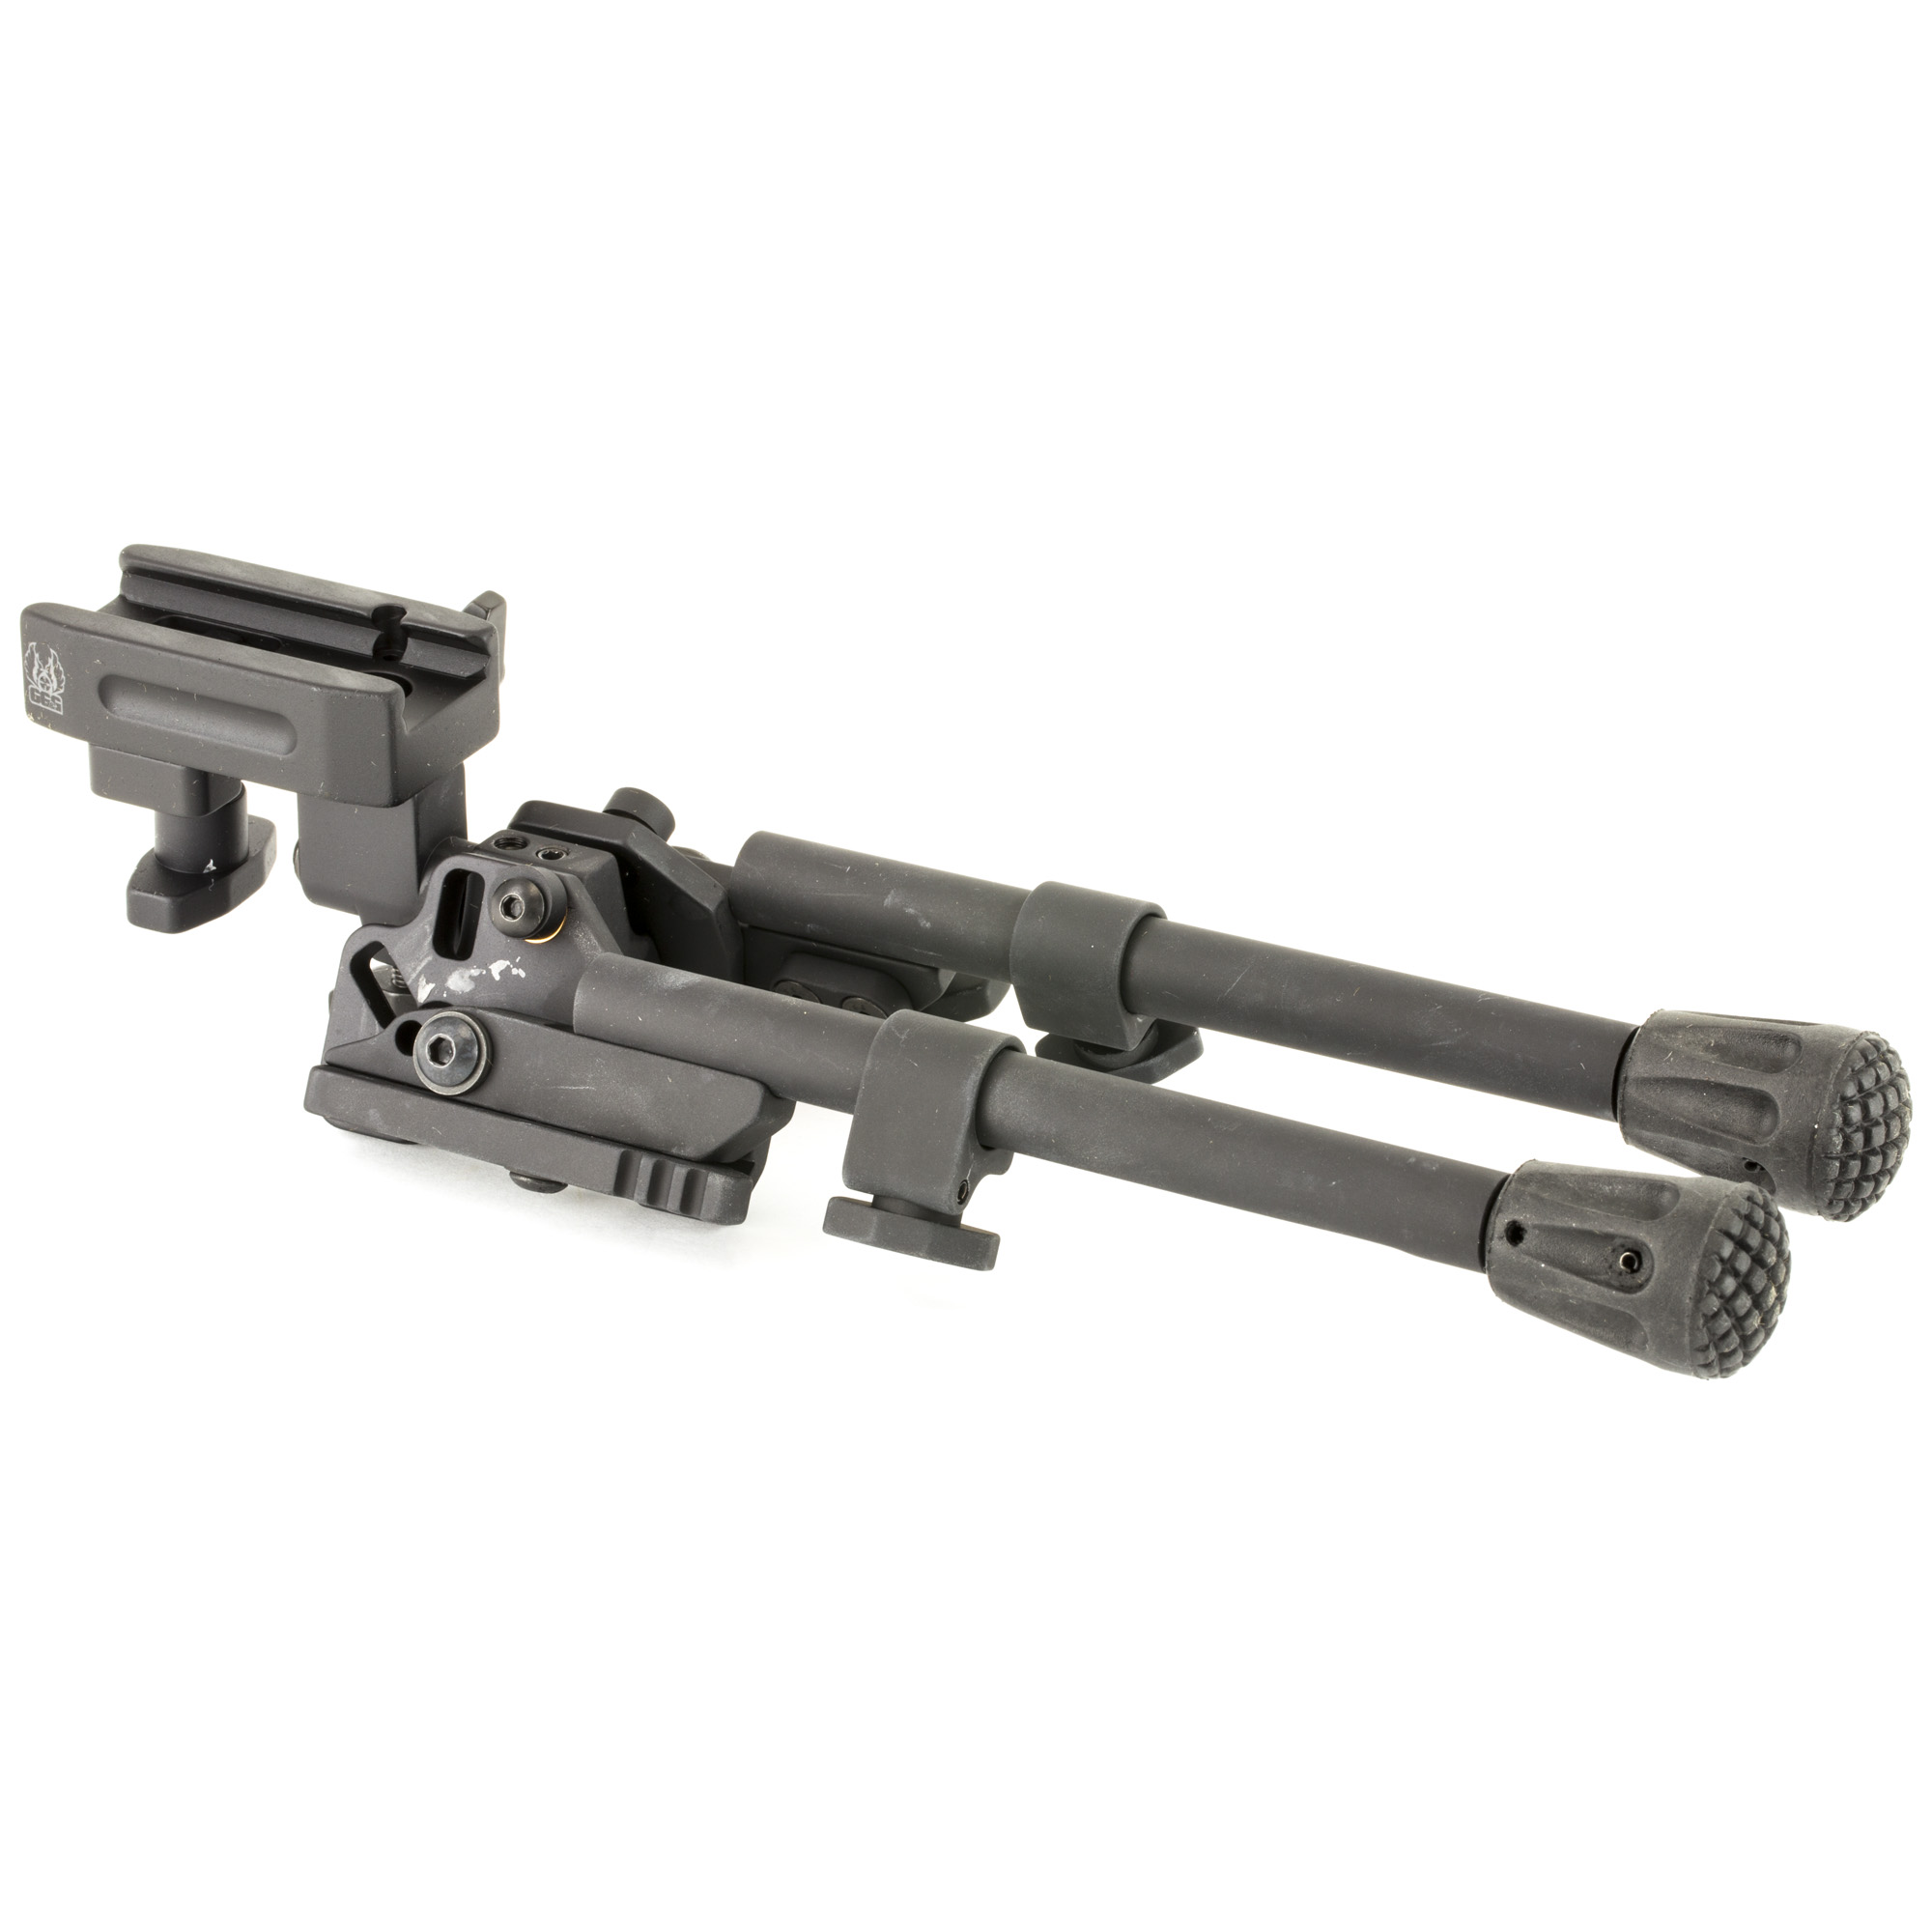 """GG&G's Tactical XDS-2 Bipod (8""""-10.5"""") incorporates a head that pans or swivels"""" cants"""" provides a system that would allow the bipod legs to lock forward at a 45-degree angle for difficult terrain"""" and provides rubber feet that are replaceable and grip more surfaces. It has 20 degrees of panning capability to the left and right of the center position and 25 degrees of canting capability each side of center. When the Tactical Bipod legs are deployed and locked in the straight down position they can be independently adjusted from 8"""" to 10.25""""."""